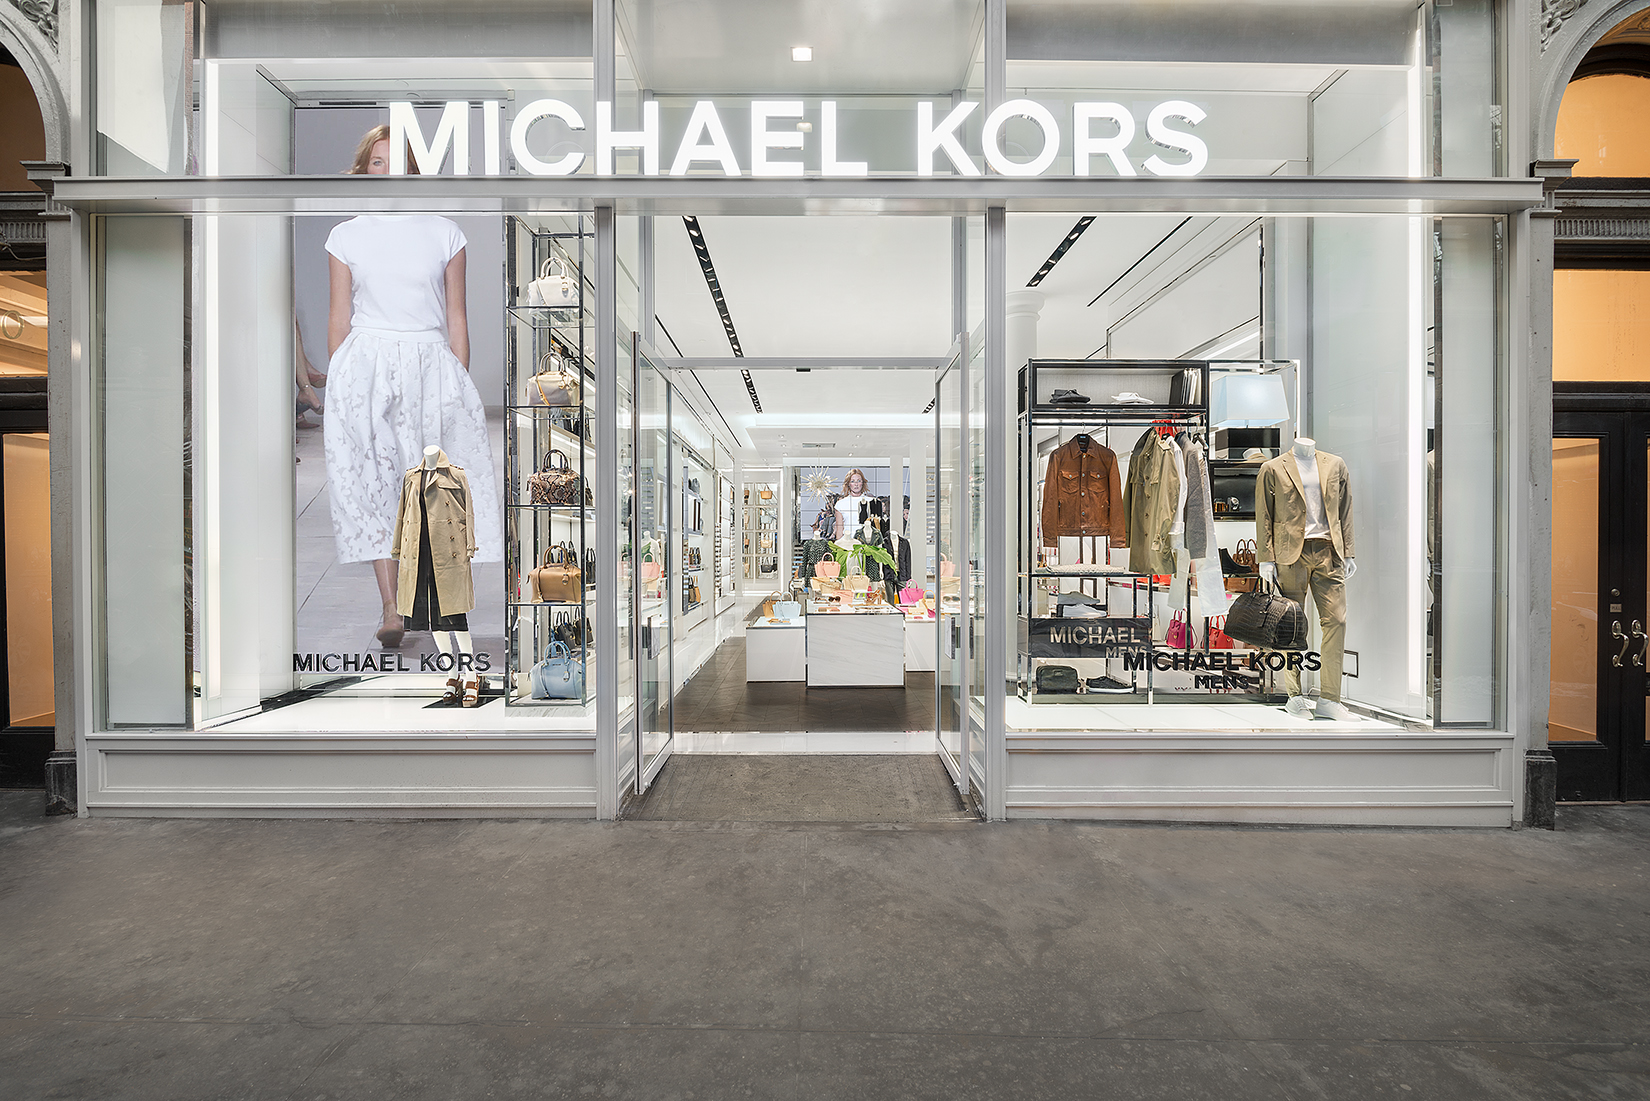 Michael kors ha comprato jimmy choo velvetstyle for Michaels crafts pittsford plaza